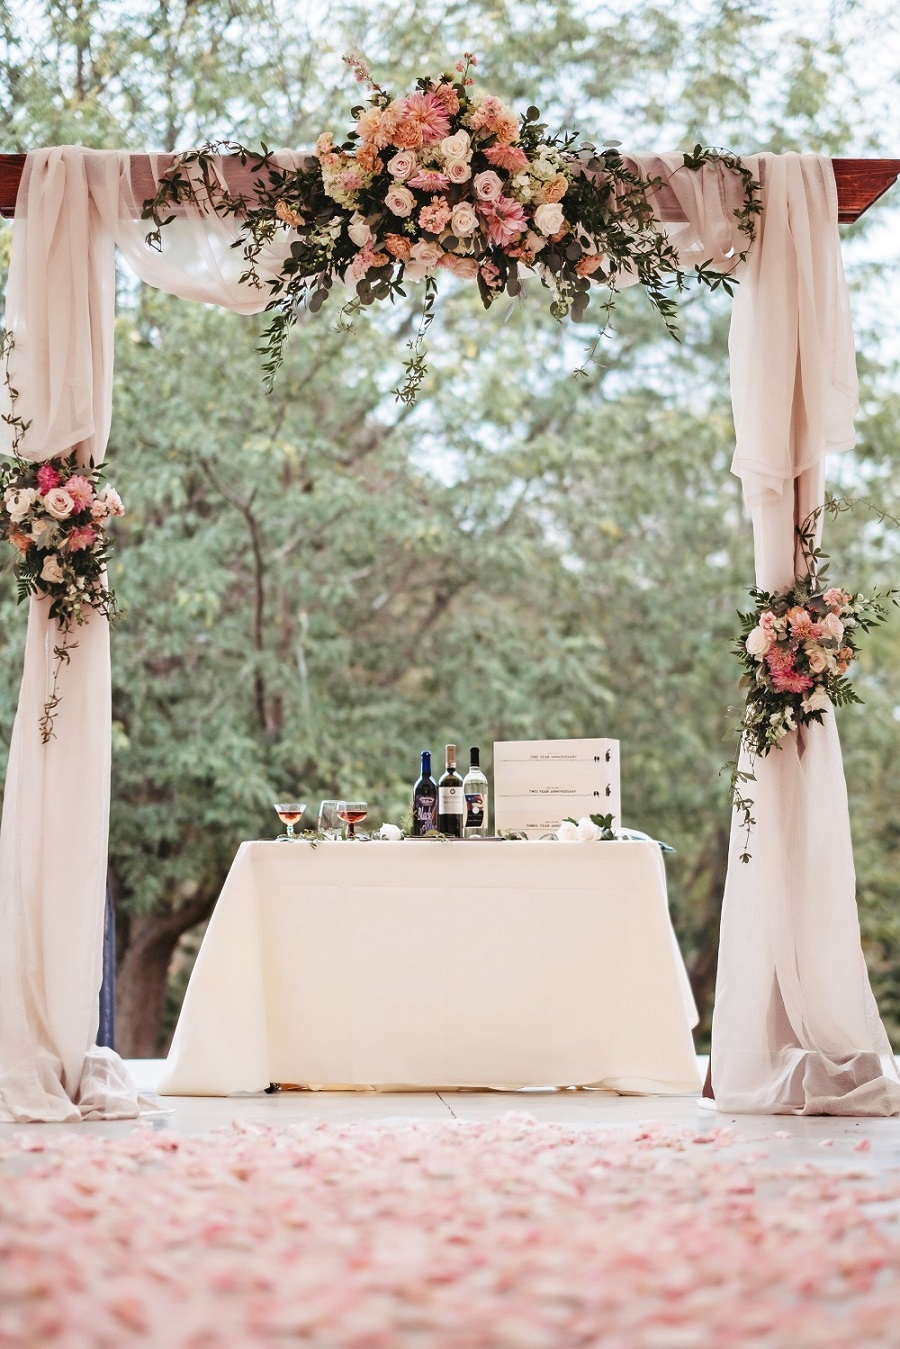 wedding decor, floral arbor, wedding backdrop